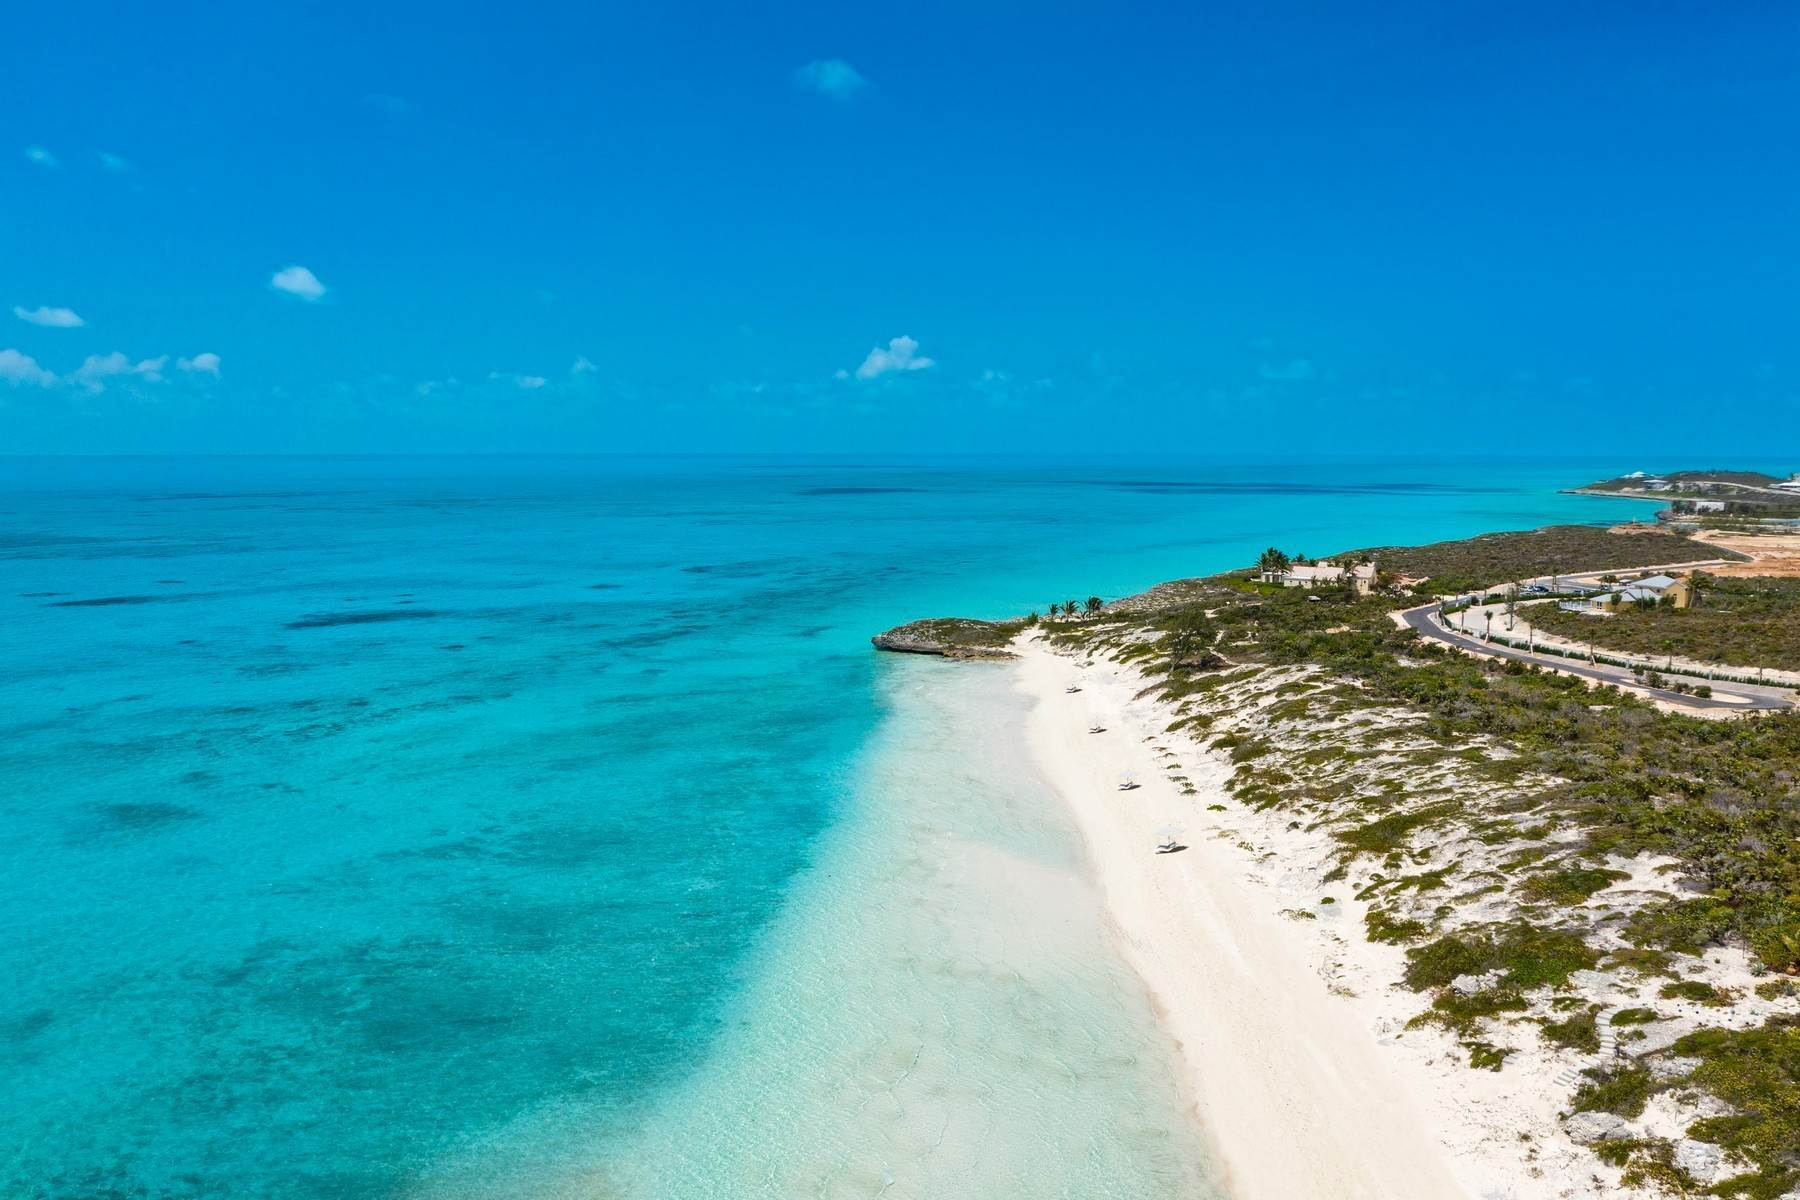 17. Single Family Homes for Sale at SOUTH BANK - THE OCEAN ESTATE I - BANKS VILLA 5 South Bank, Long Bay, Providenciales Turks And Caicos Islands